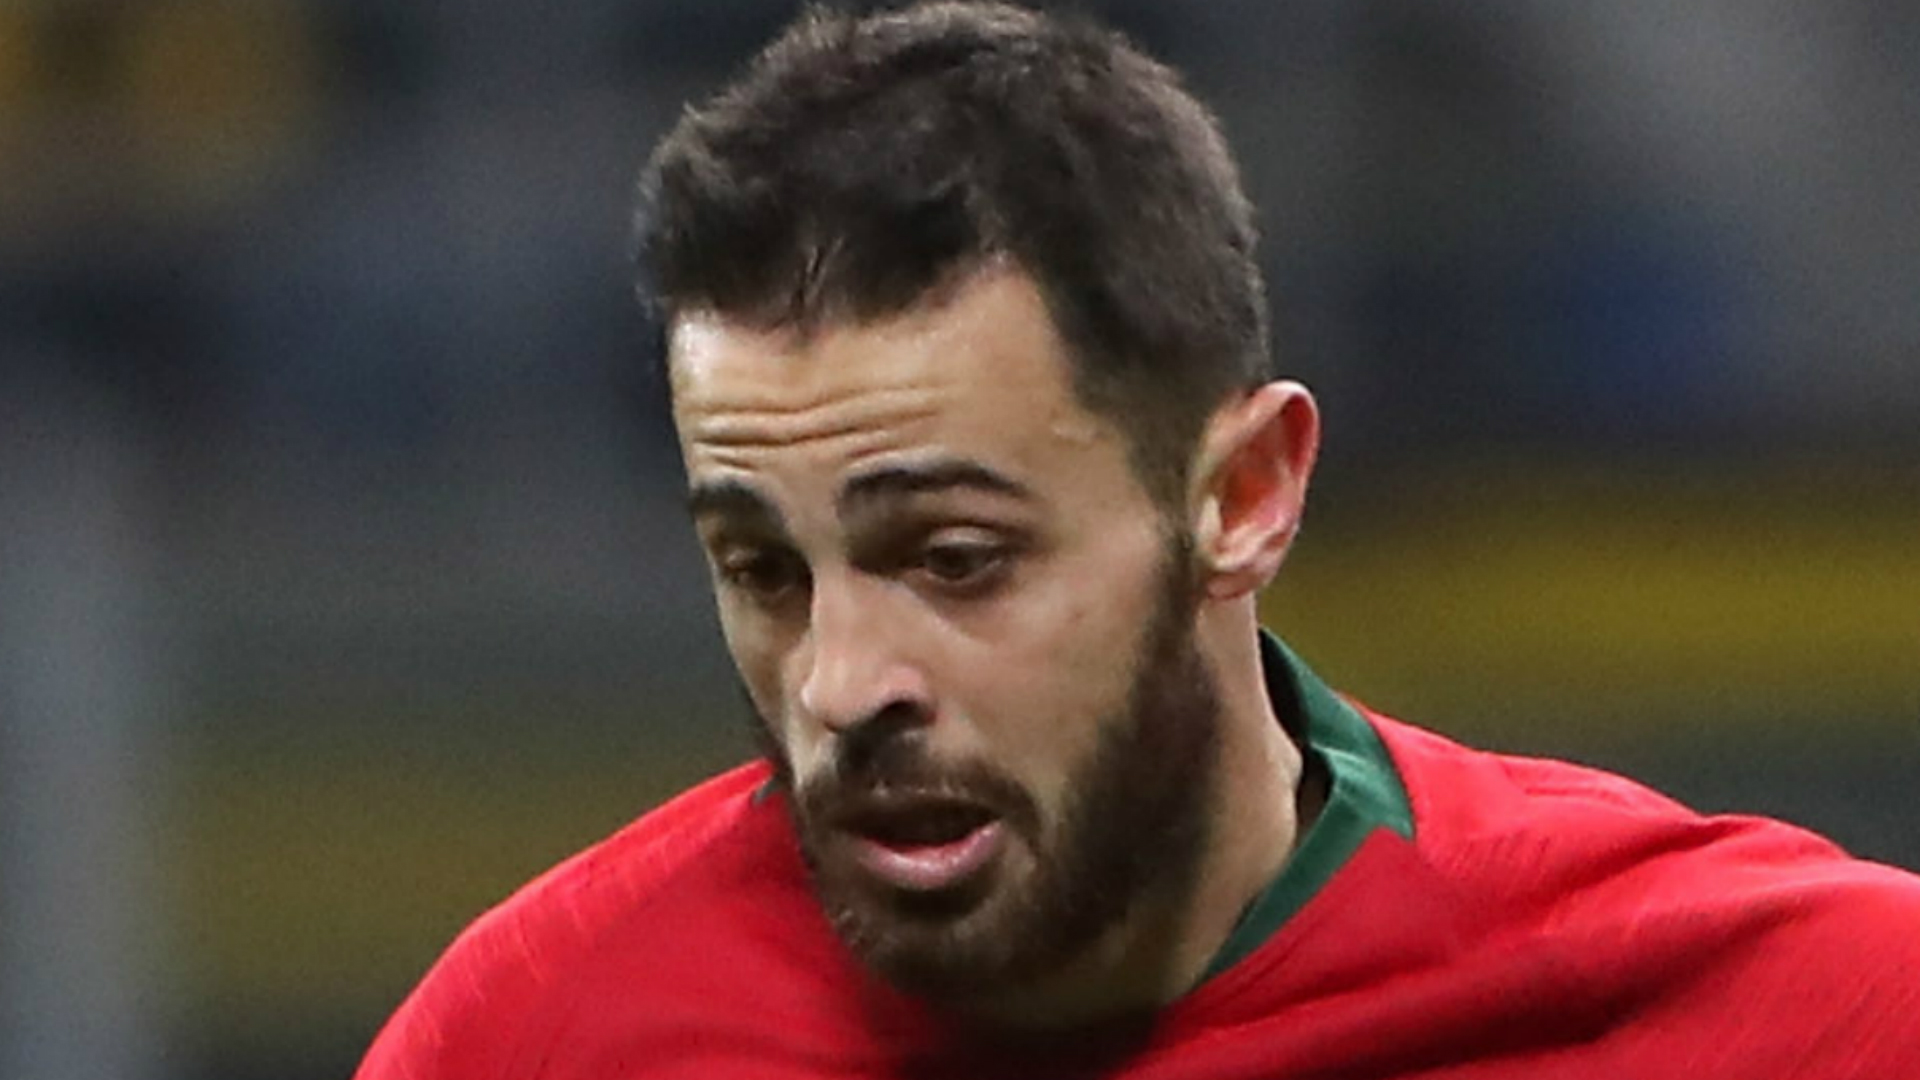 Injury rules Bernardo Silva out of Poland clash